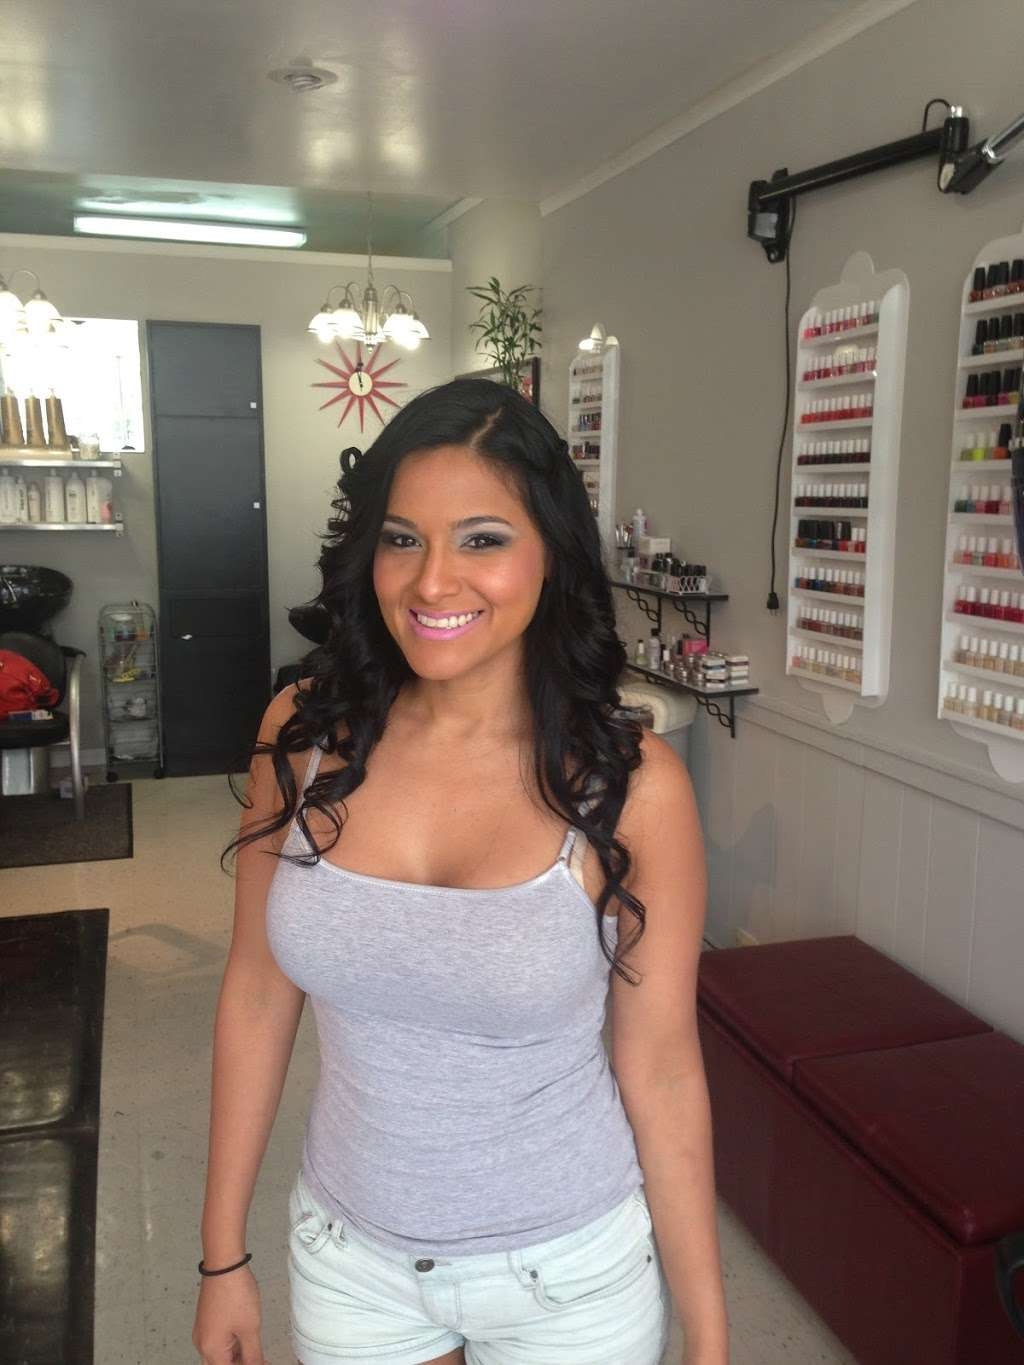 Sophisticut - hair care  | Photo 5 of 8 | Address: 366 Anderson Ave, Cliffside Park, NJ 07010, USA | Phone: (201) 941-3946